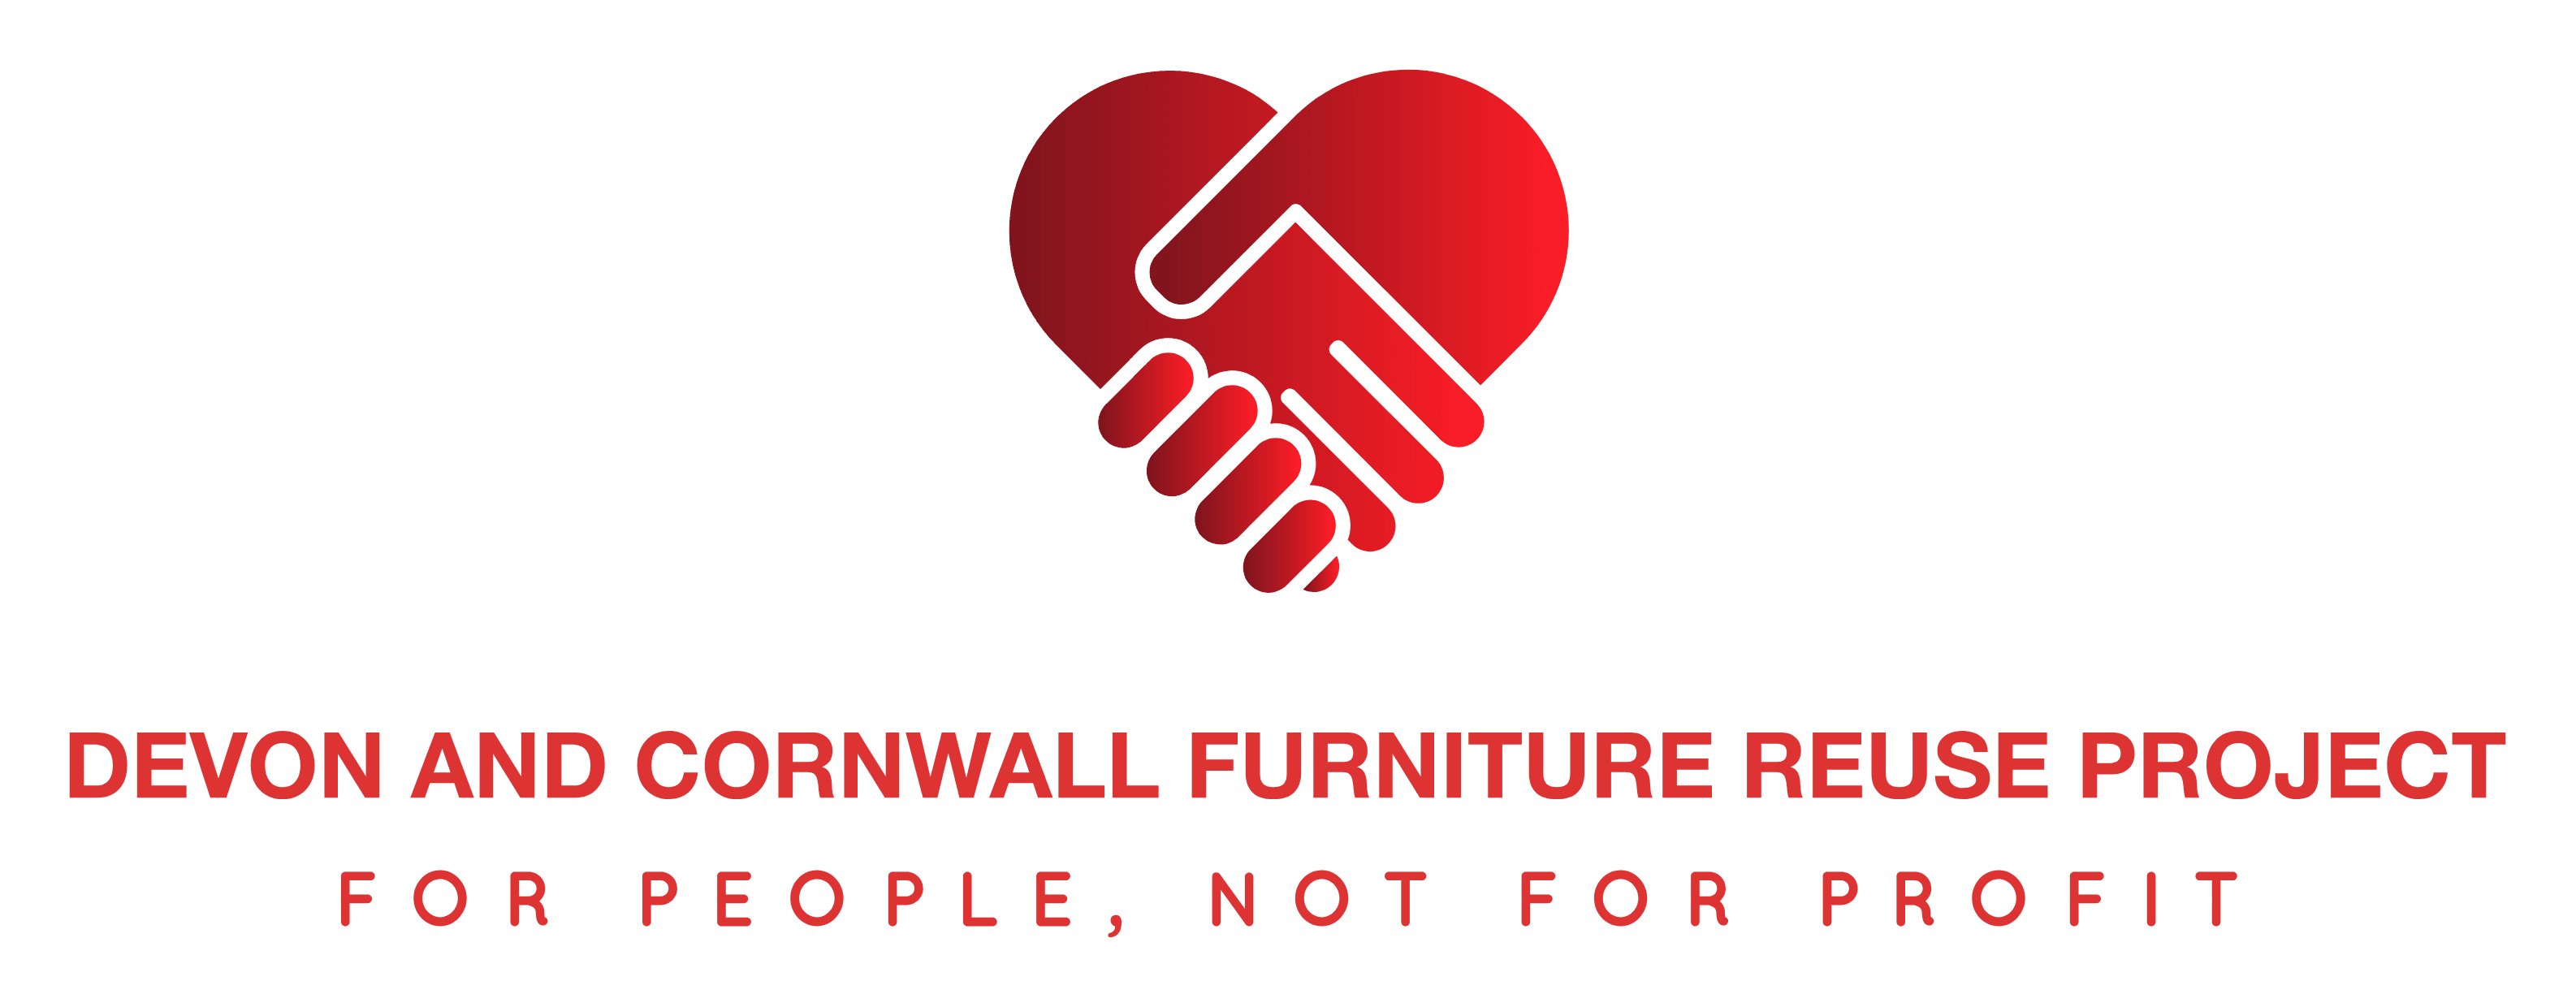 Devon & Cornwall Furniture Reuse Project